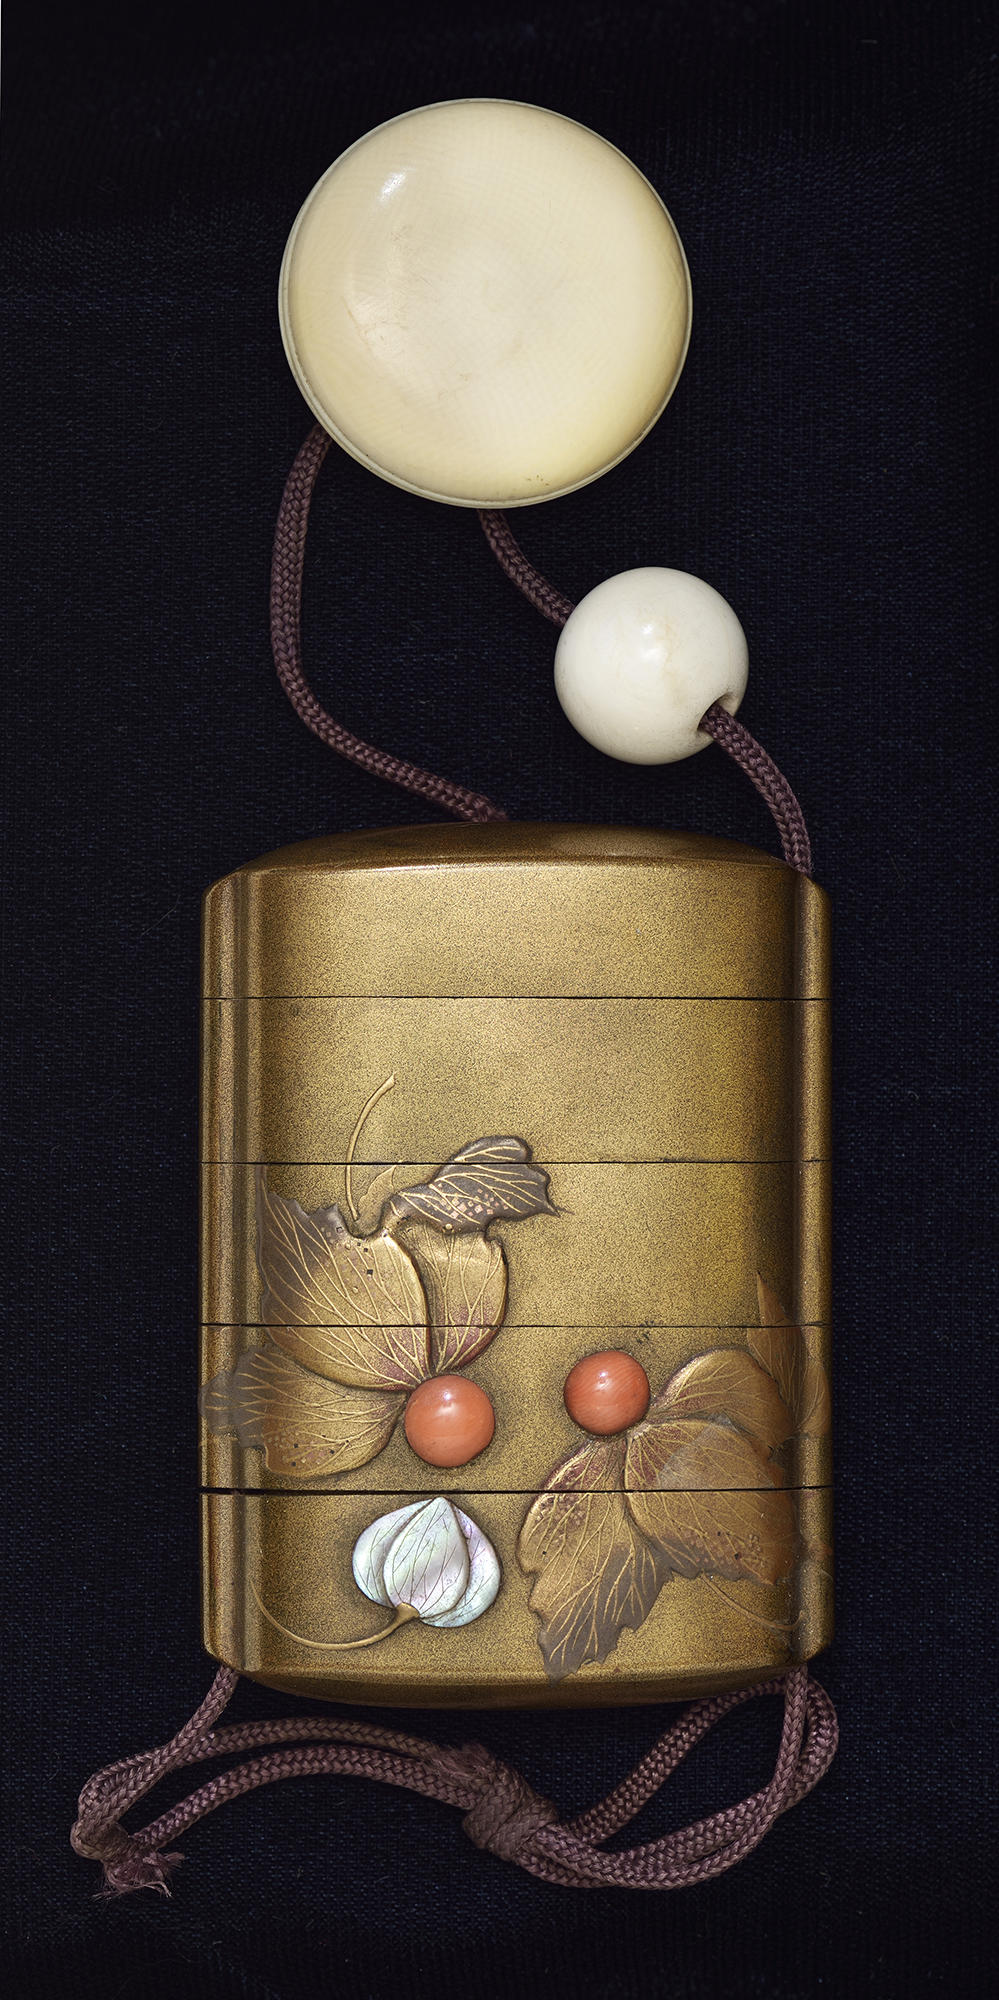 Japanese, Medicine Case (Inrō): Lantern Plant, late 19th century. Lacquered wood and gold with mother-of-pearl, coral, and lead inlays; ivory netsuke and ojime